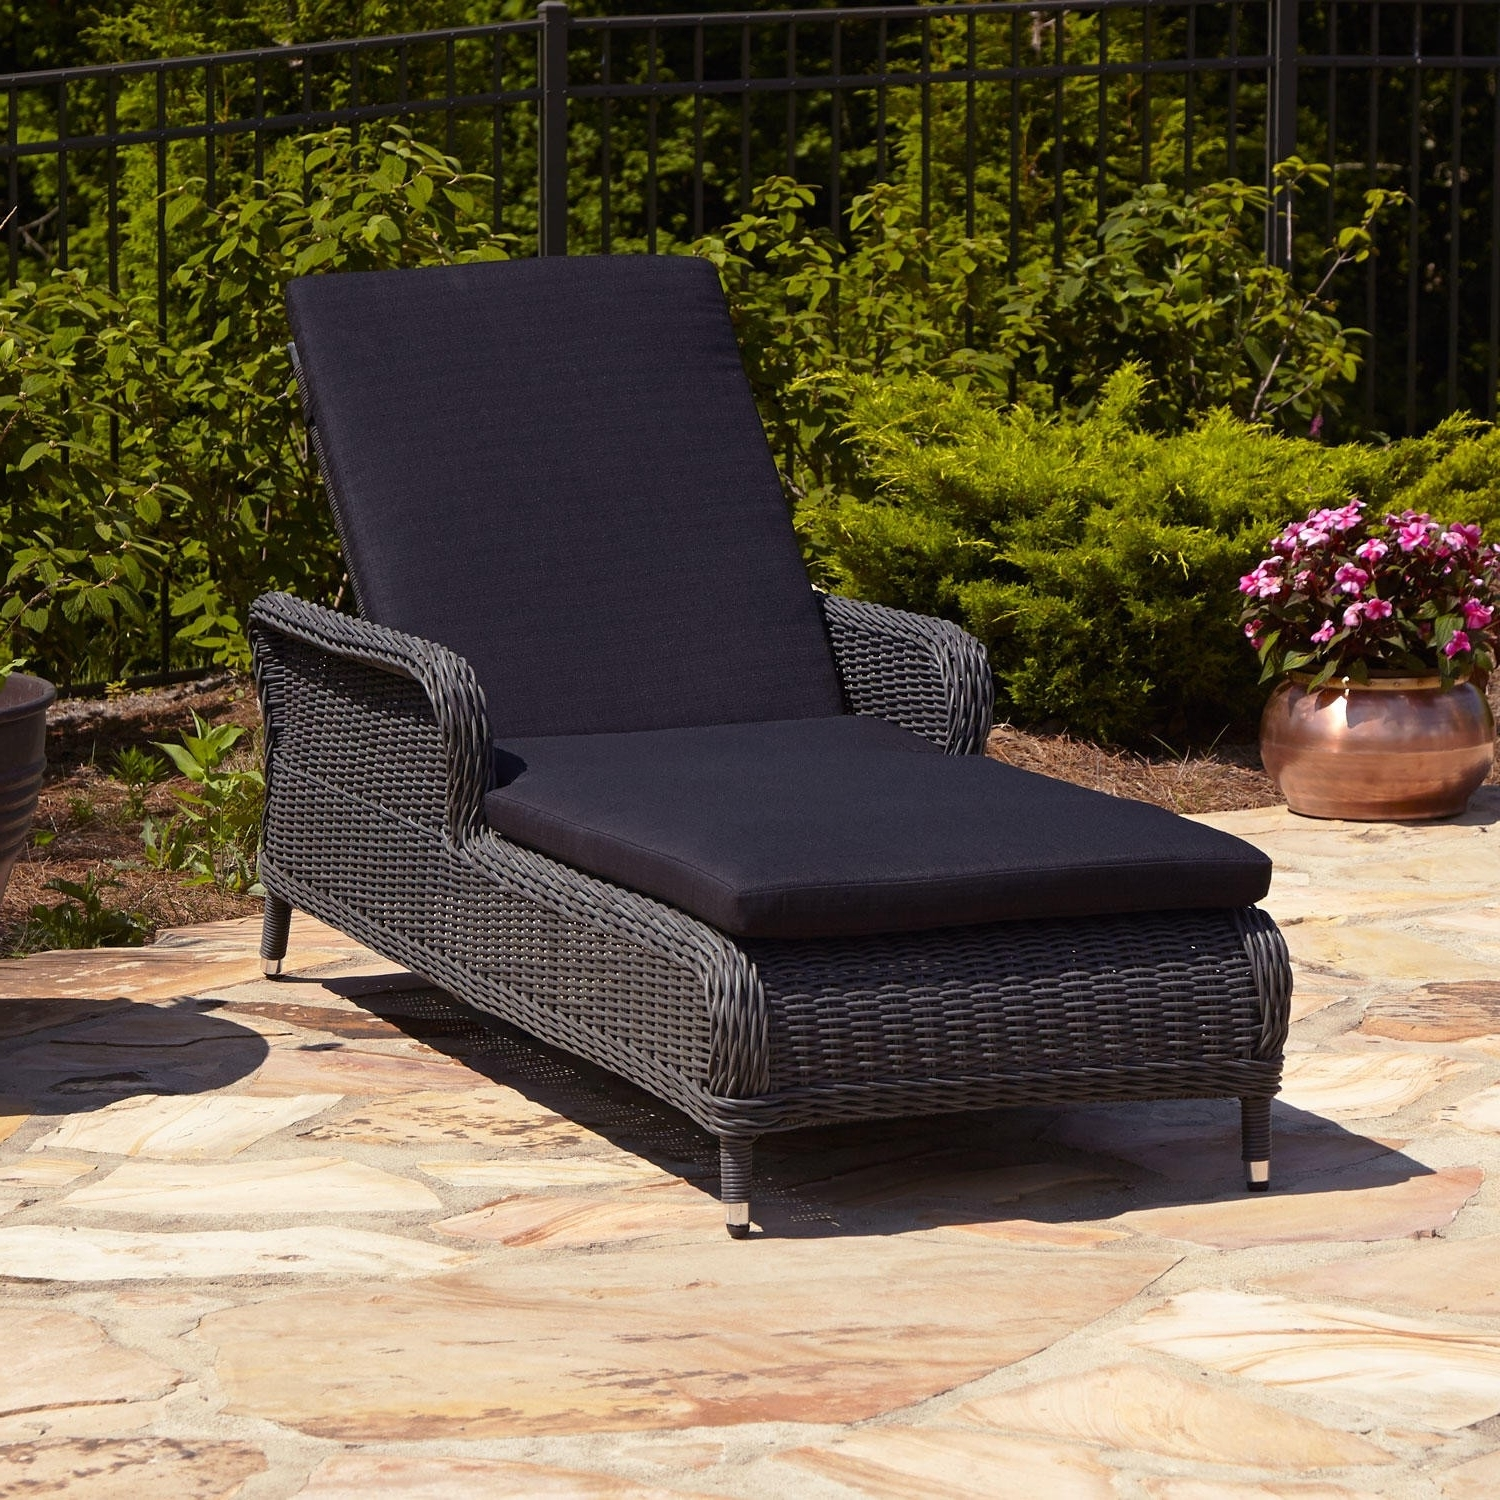 Chaise Lounge Chairs With Cushions Regarding Newest Remarkable Wicker Chaise Lounge Chair Gray Patio Furniture All (View 6 of 15)